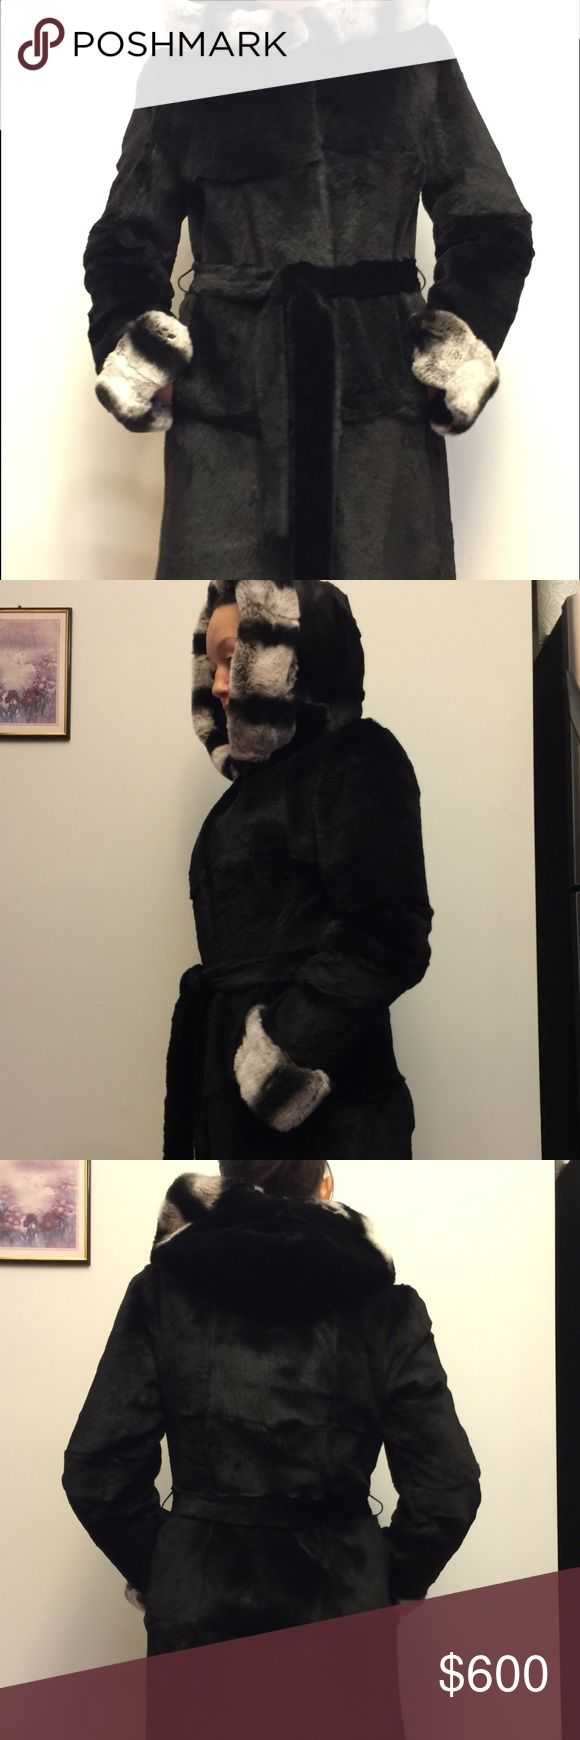 Rabbit and chinchilla fur coat 95% made of rabbit and 5% (hood and lower sleeve) made of chinchilla. Great for winter. Has good and pockets. Never worn. It was given to me as a gift but I don't wear fur coats. I need to sell it ASAP. Please share it. Size Small to Medium. n/a Jackets & Coats